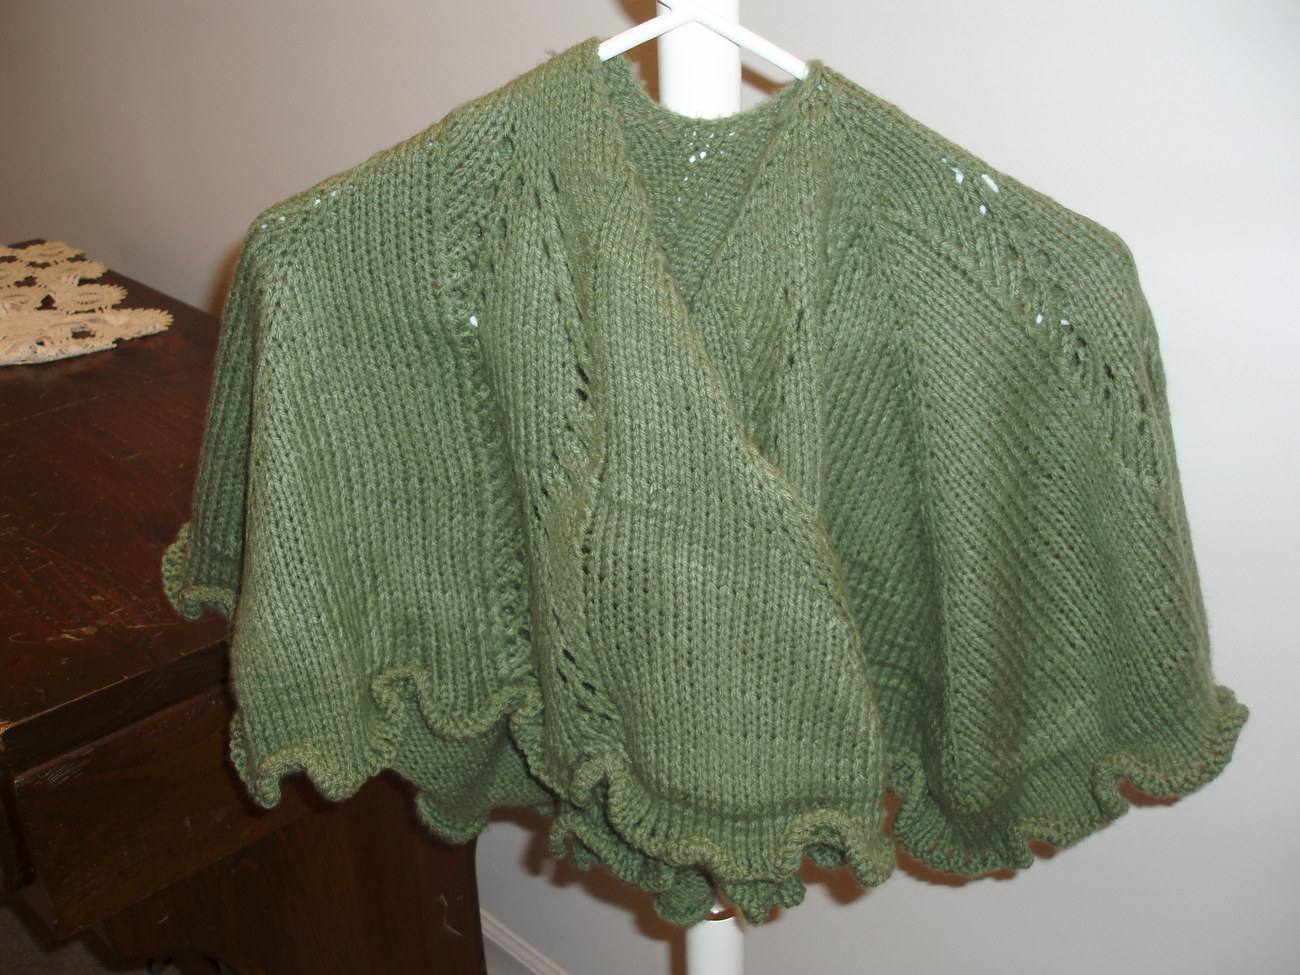 Green knit shawl with lace motif